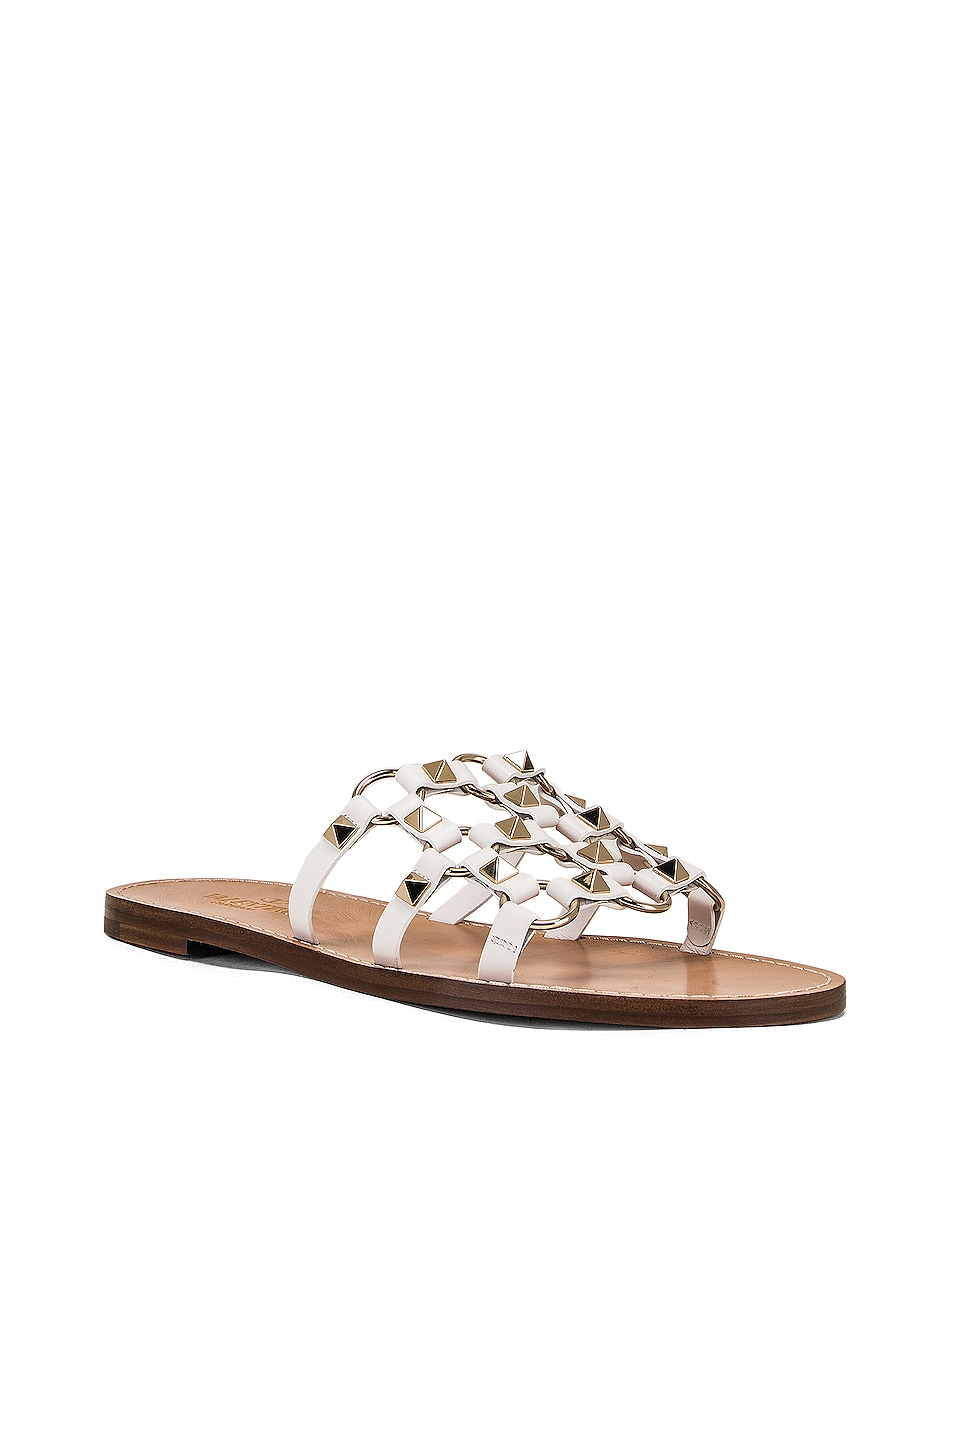 Image 2 of Valentino Cagestuds Sandal in Bianco Ottico